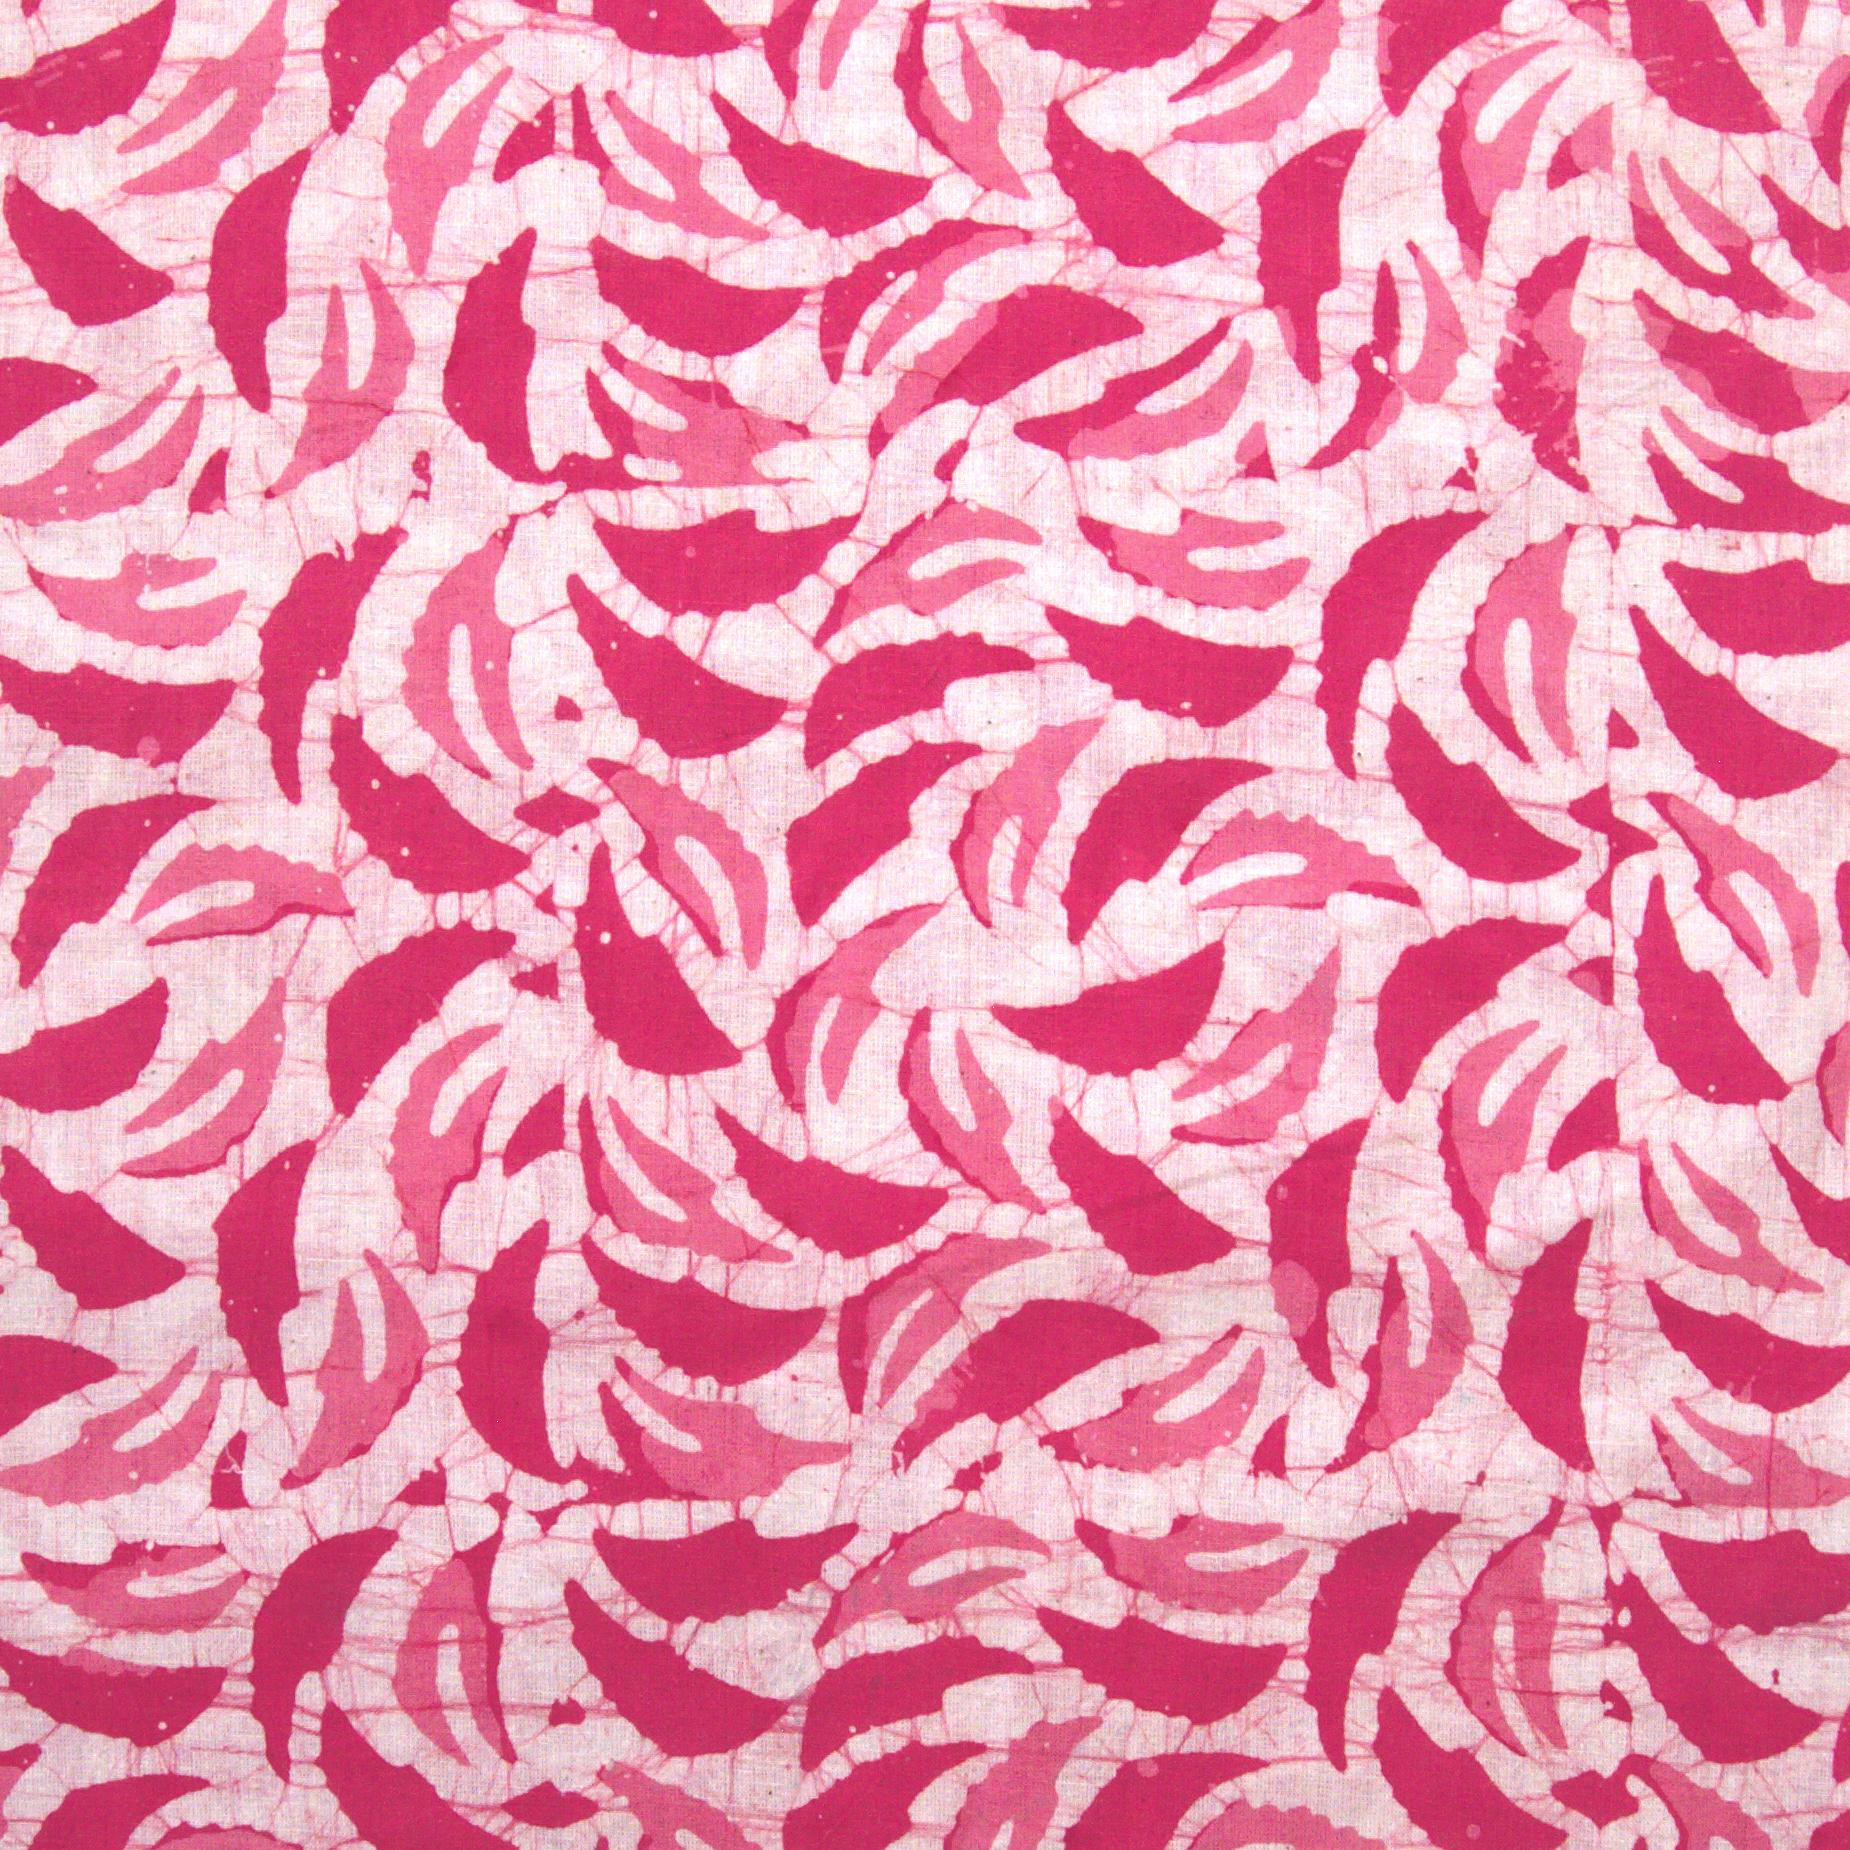 2 - SHA10 - 100% Block-Printed Batik Cotton Fabric From India - Batik - Pink Red Neem Leaves